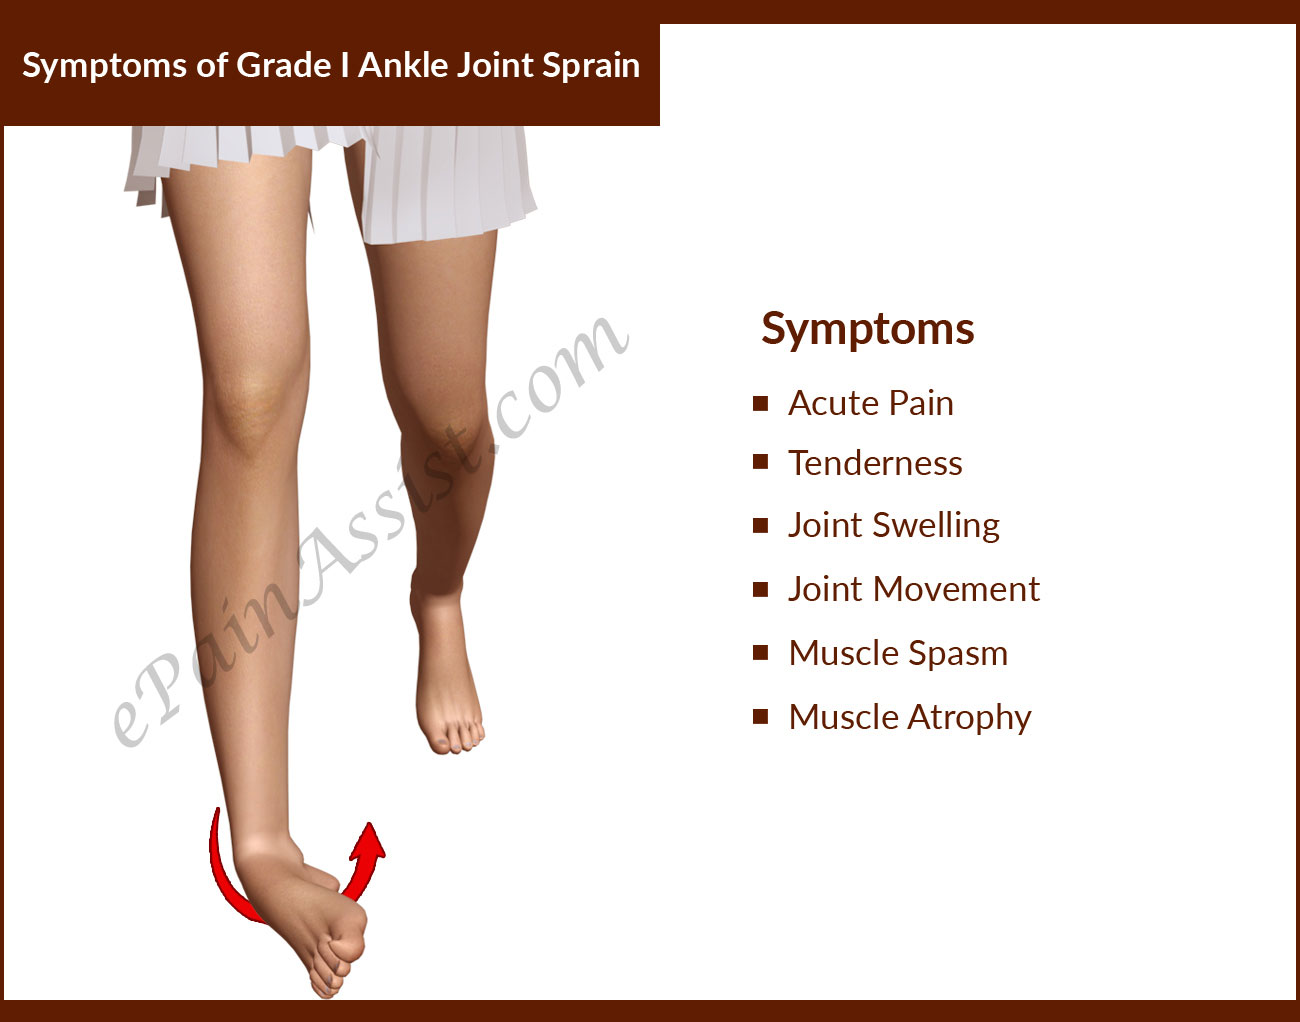 Symptoms of Grade I Ankle Joint Sprain